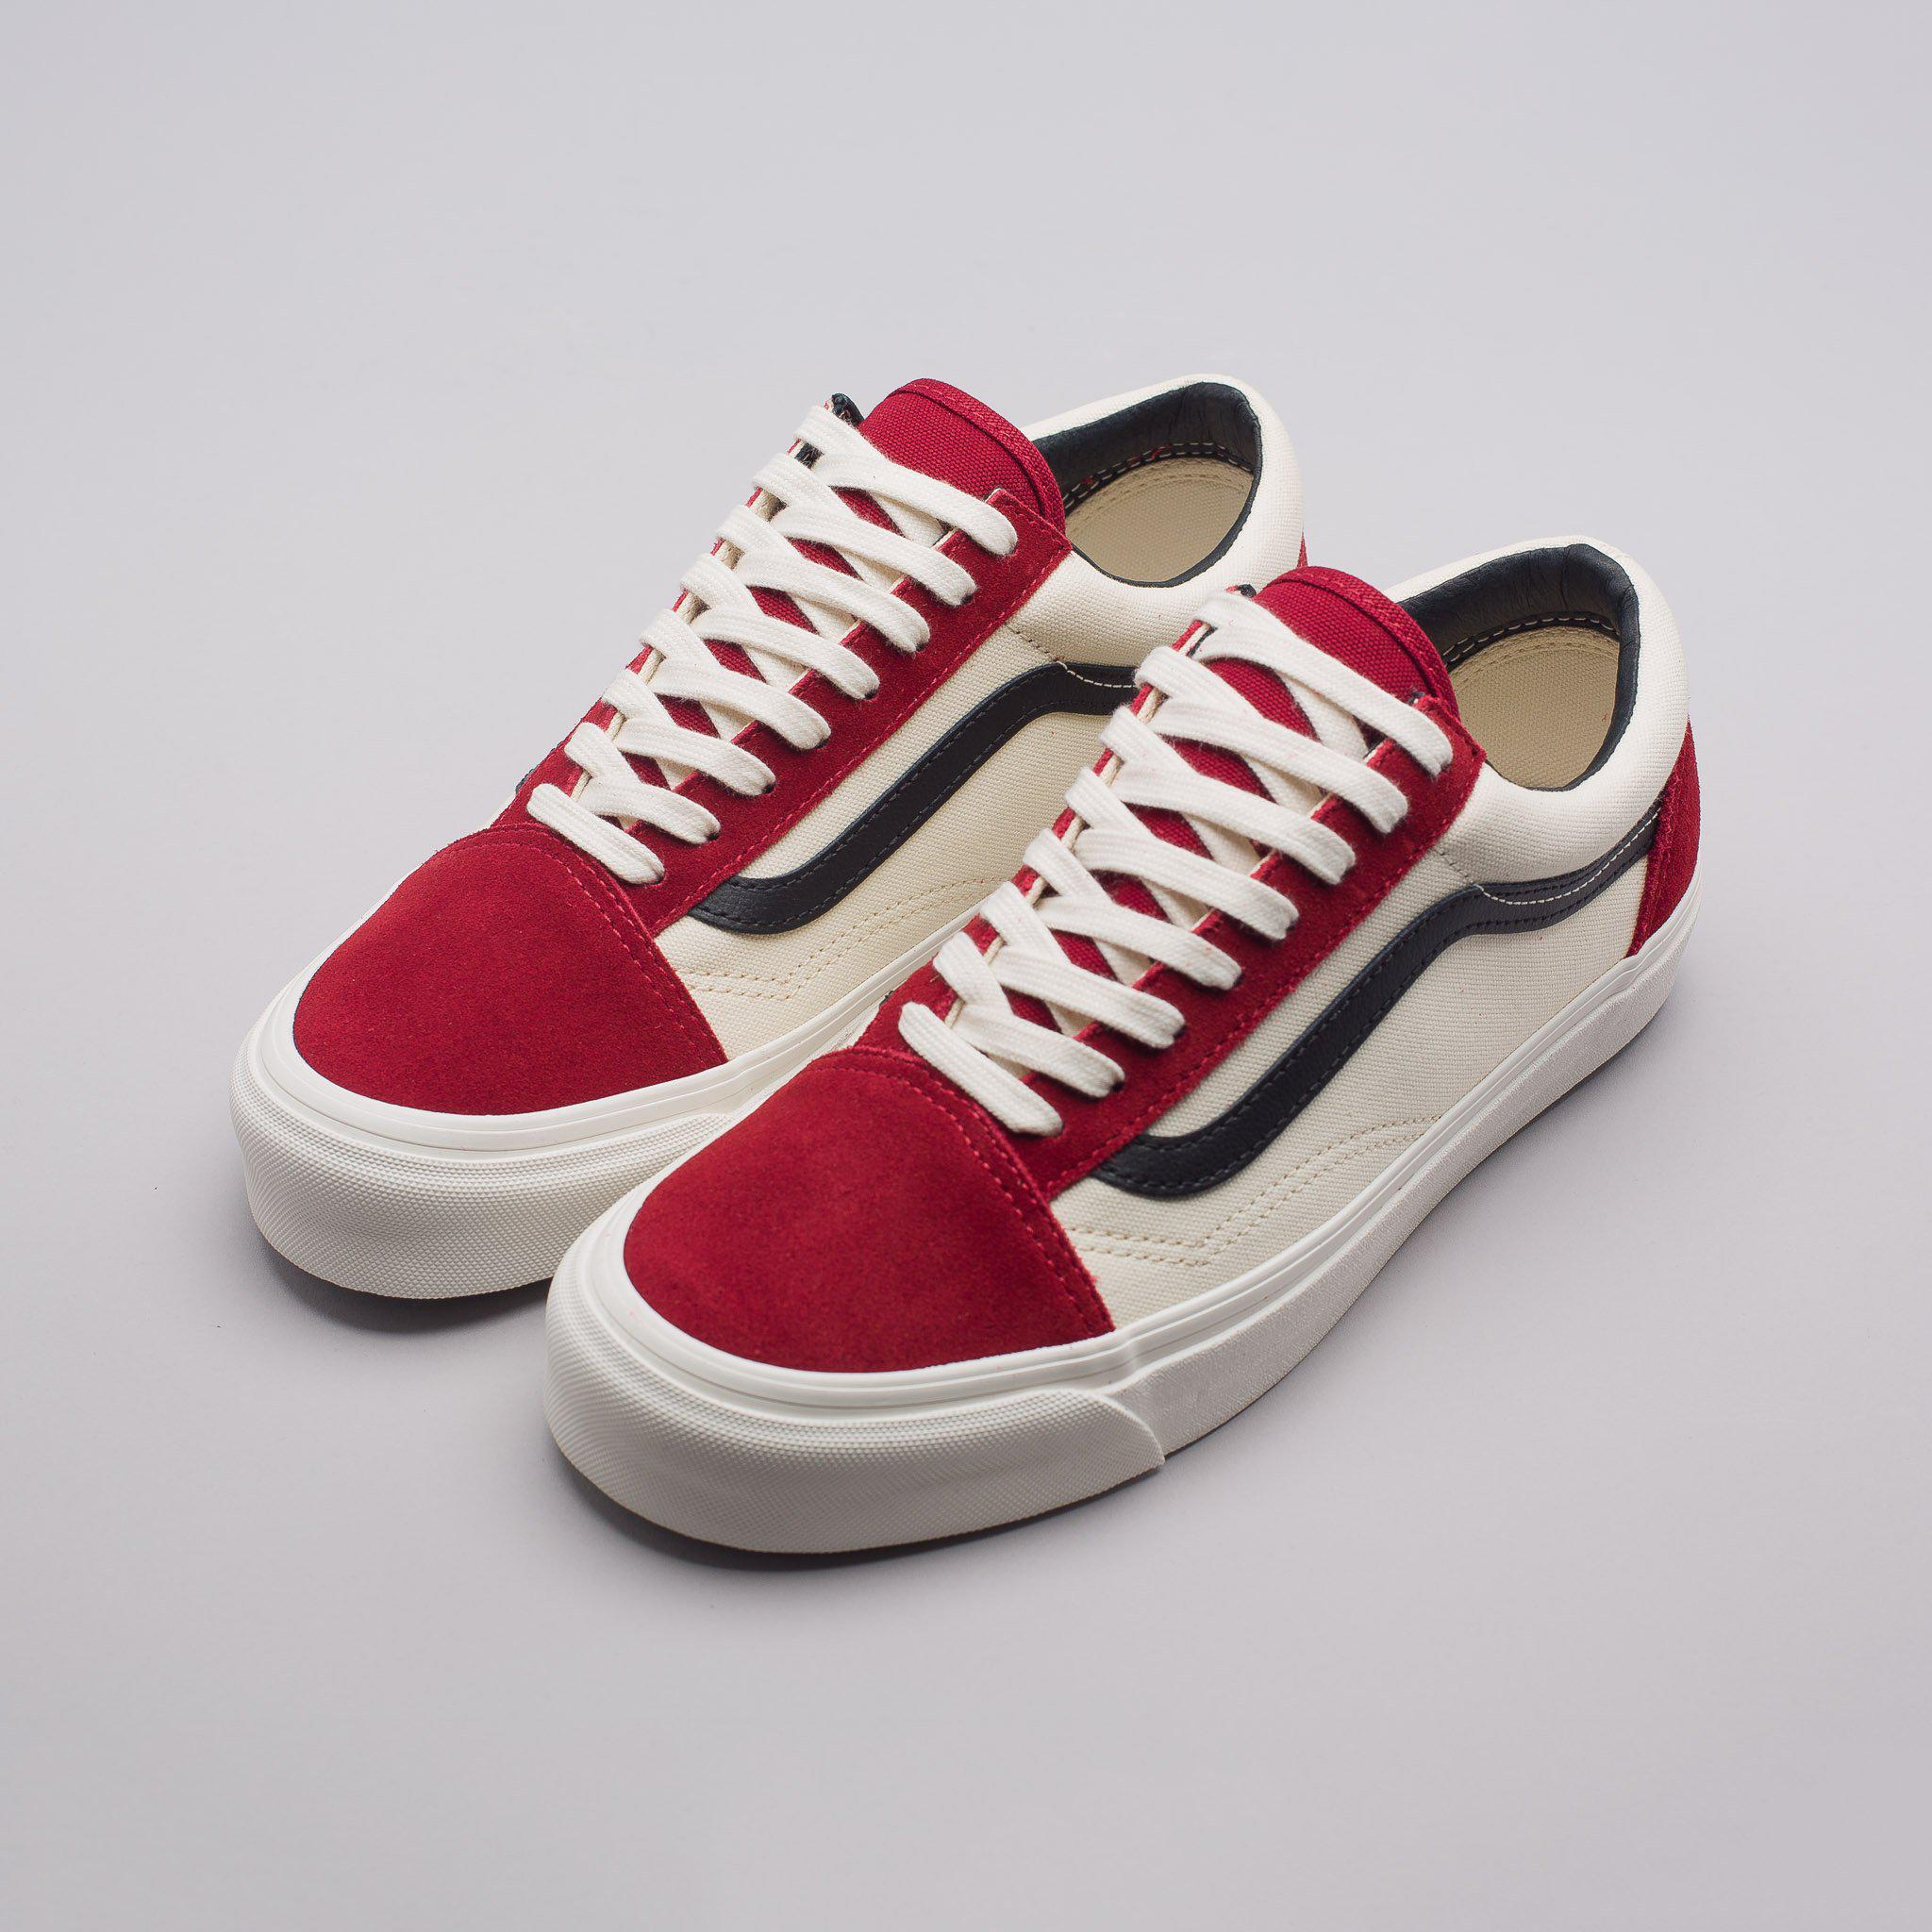 vans old skool og lx red dahlia